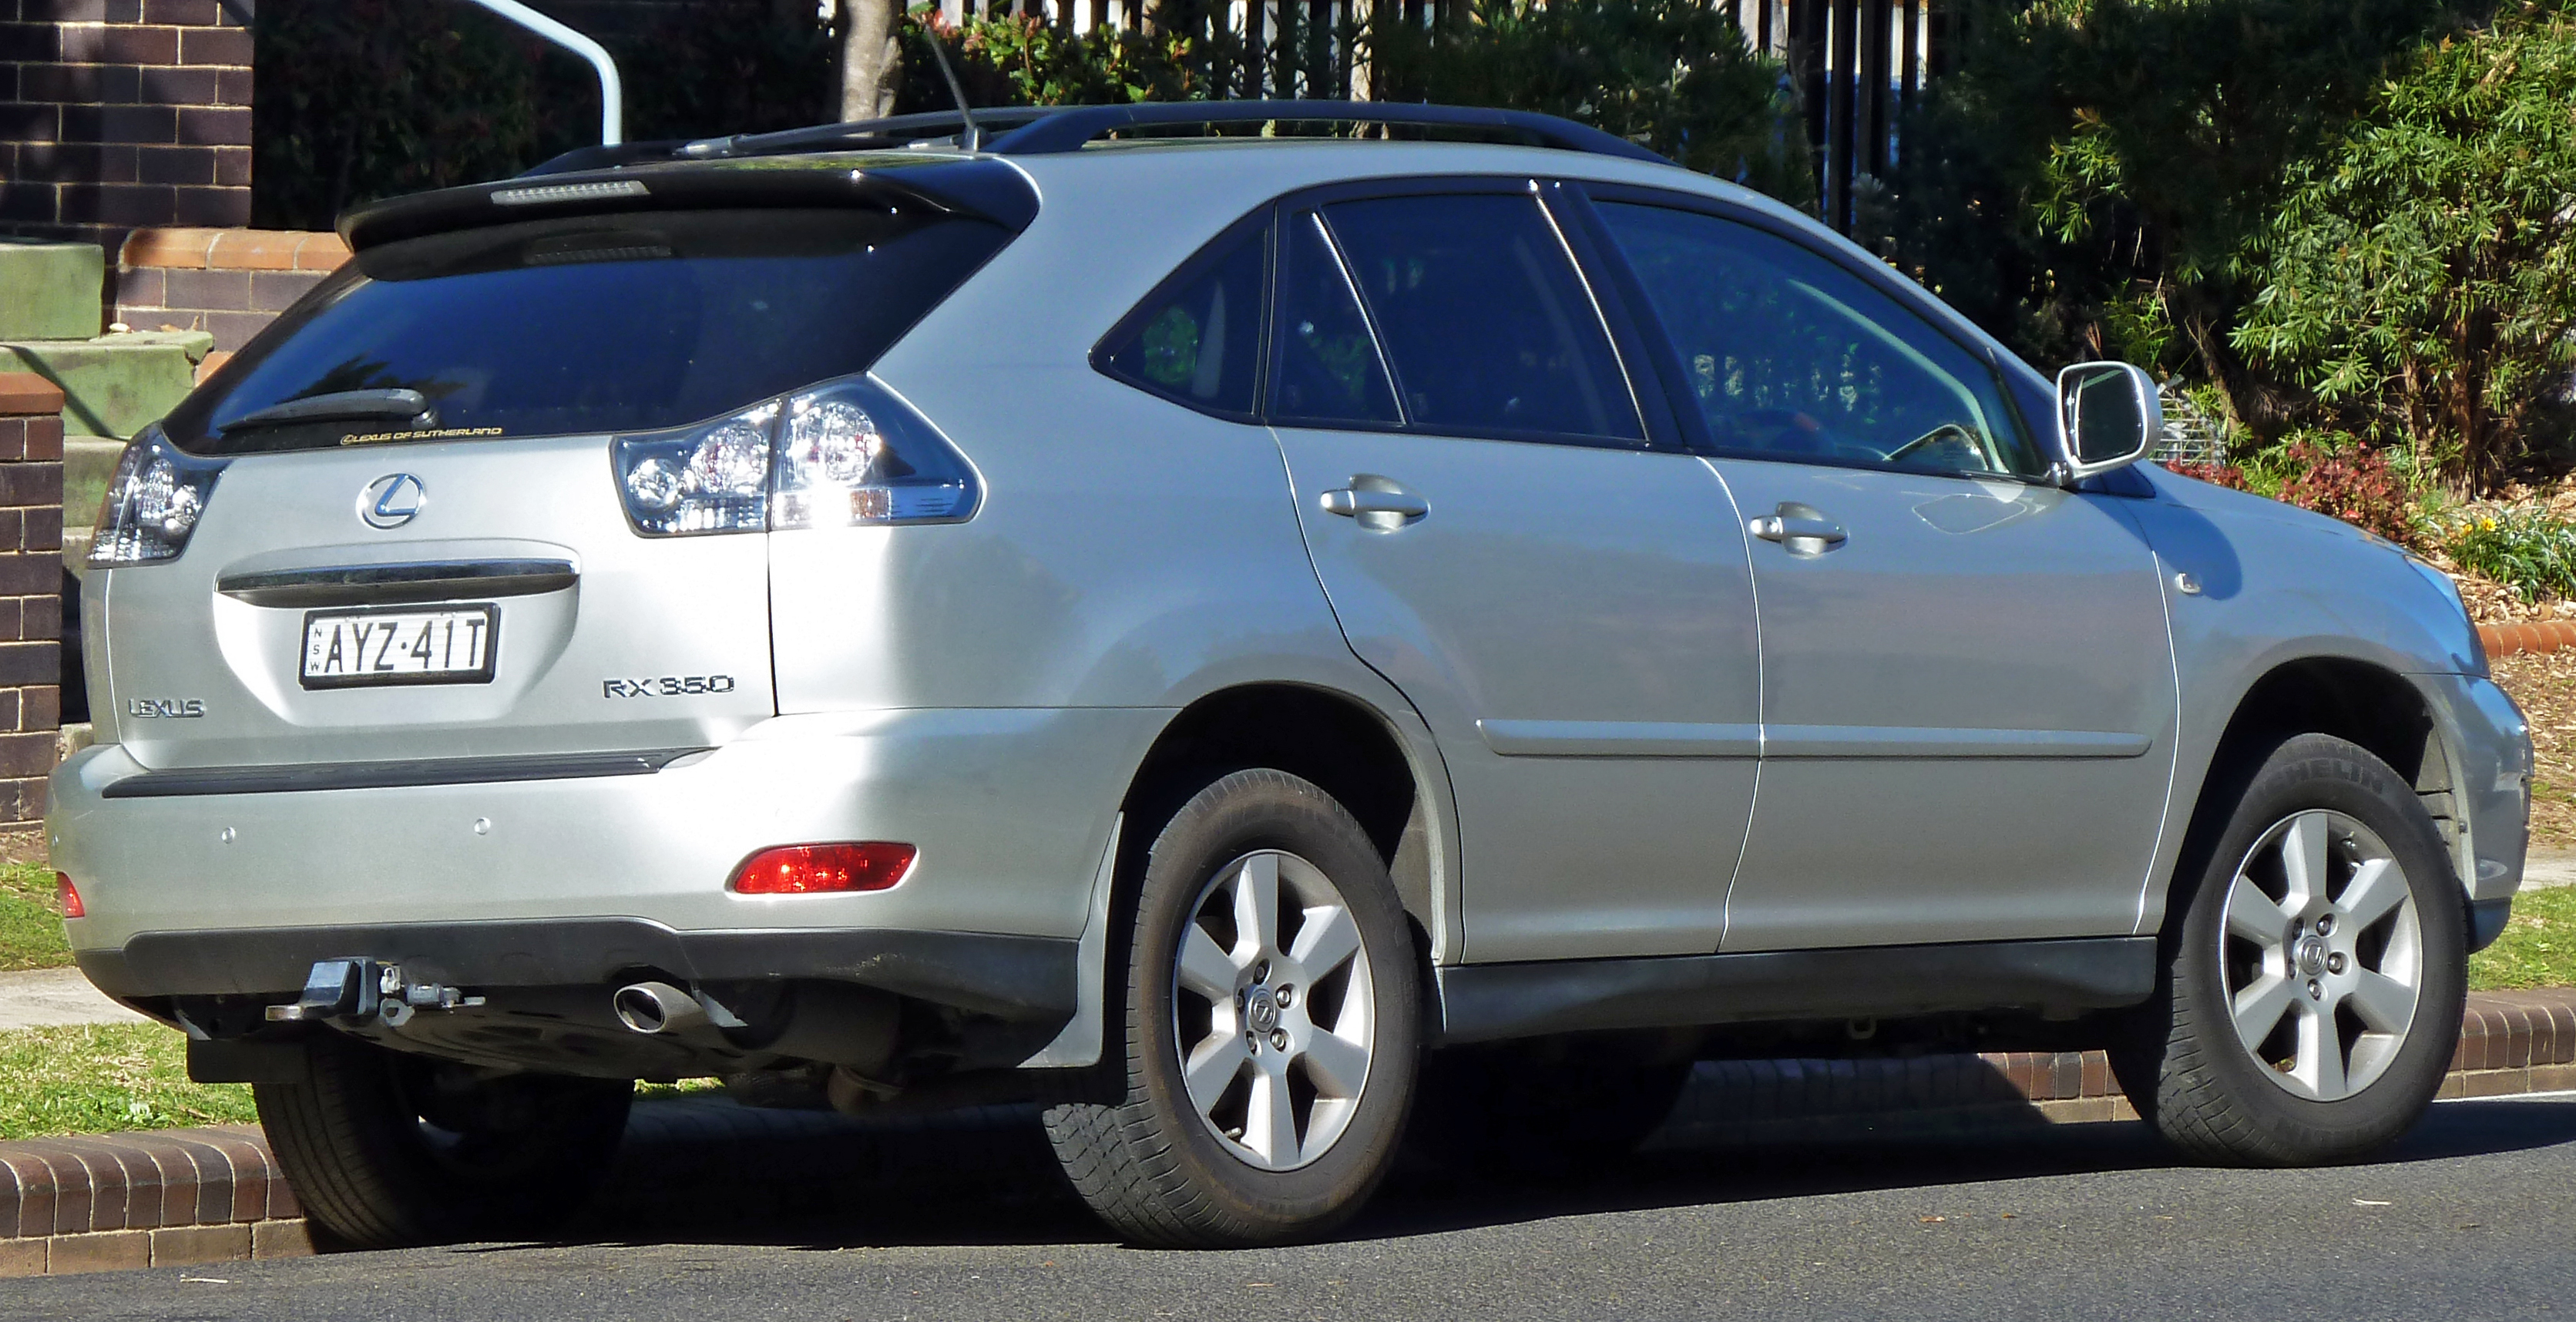 File:2006-2007 Lexus RX 350 (GSU35R) Sports wagon 01.jpg - Wikimedia Commons